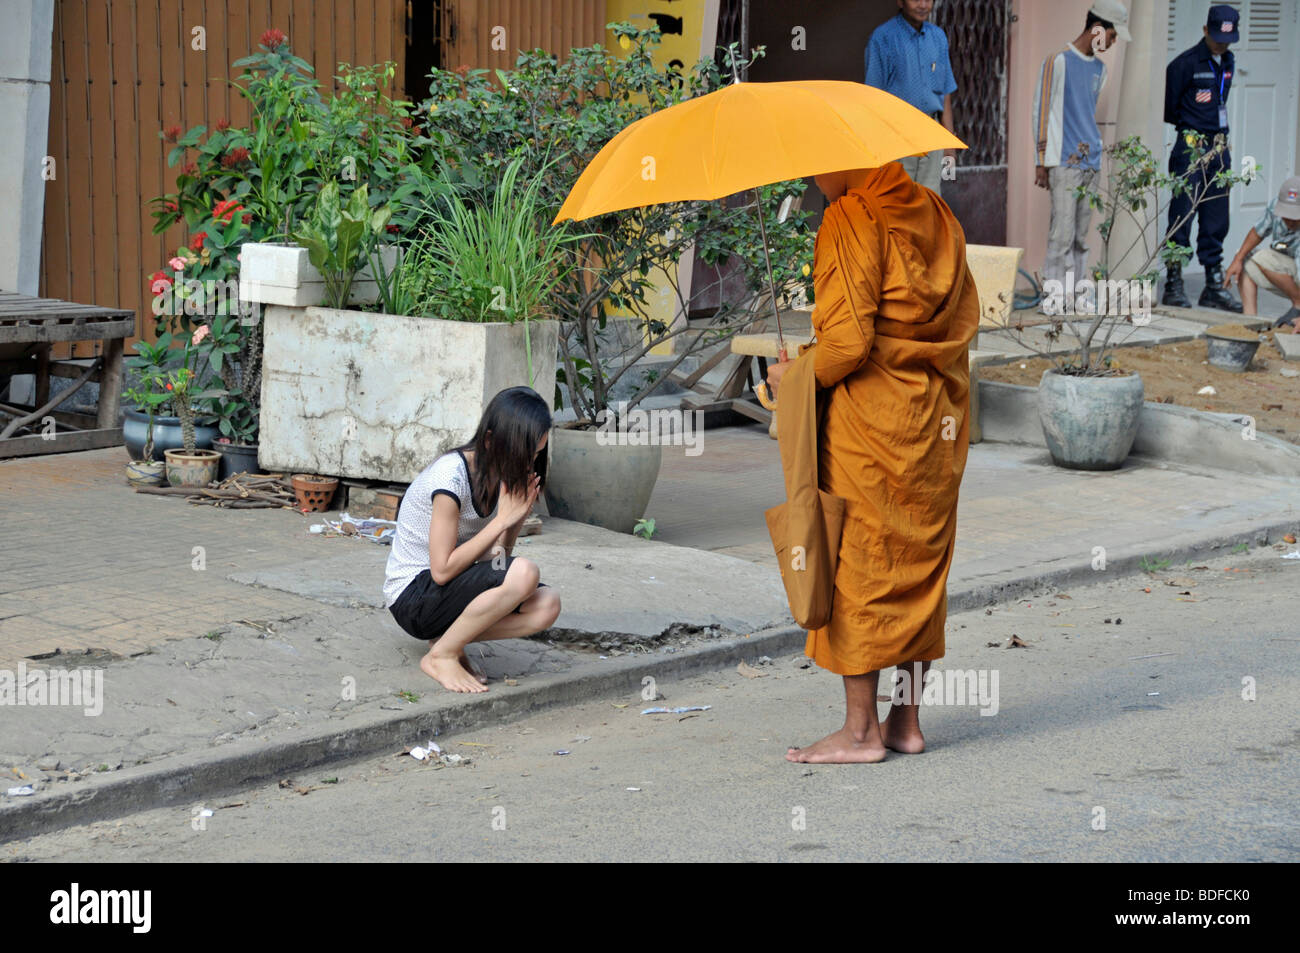 Devotion of a monk while to begging for alms, Binhabad, Phnom Penh, Cambodia, Asia - Stock Image